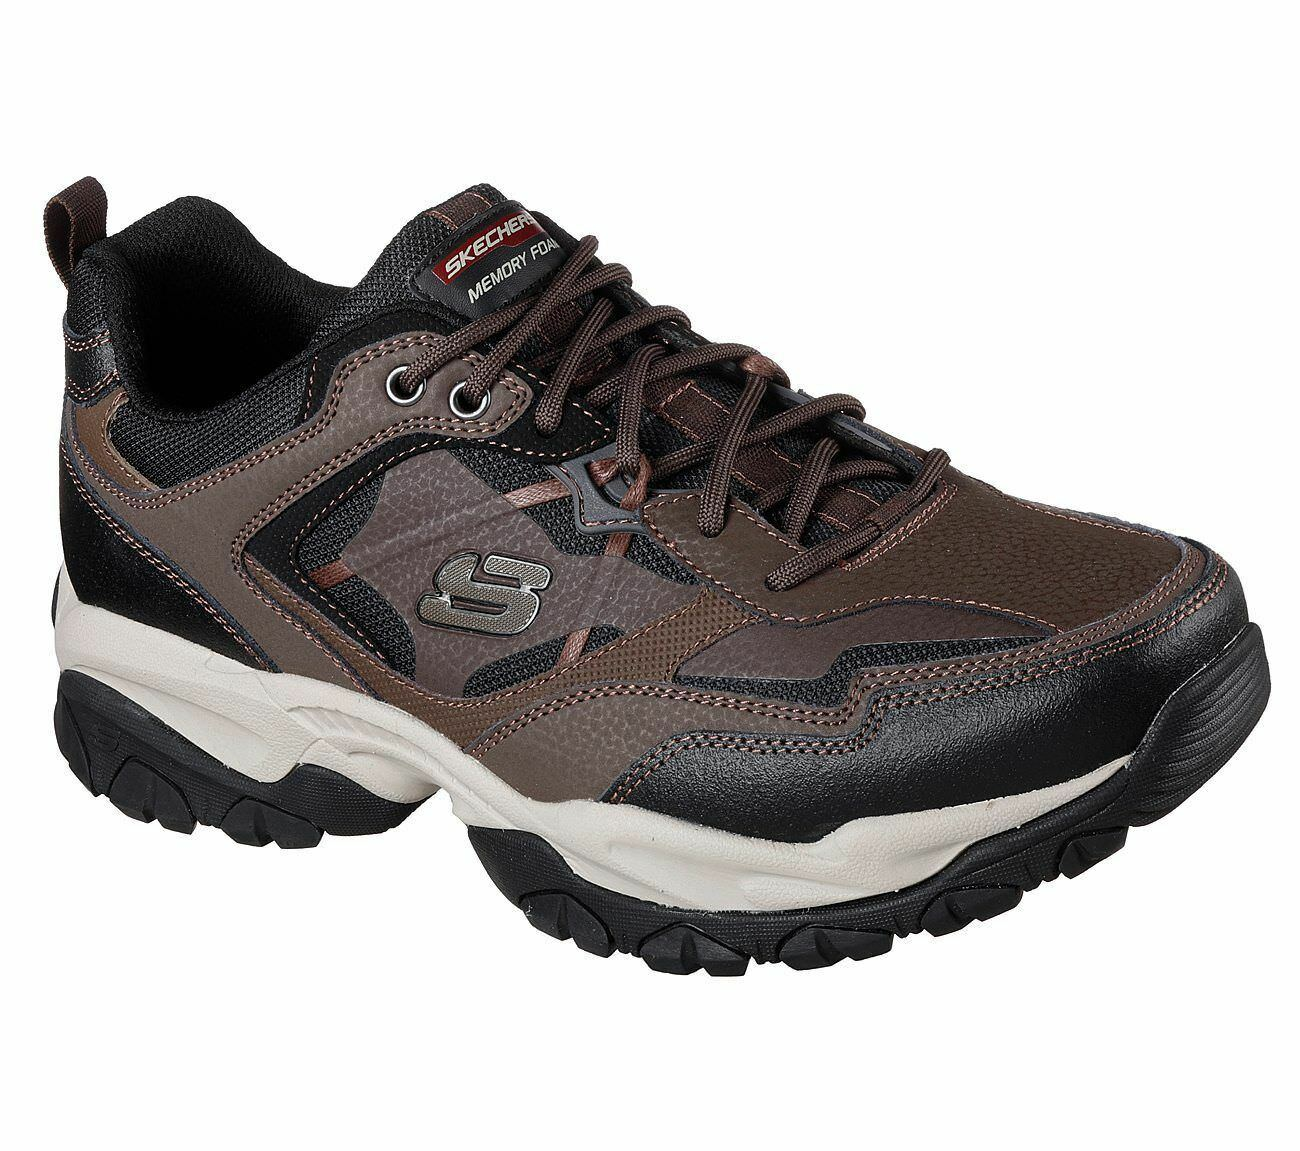 52700 BRBK Brown Fit Skechers Shoes Men Memory Foam Sporty Train Comfort Sneaker